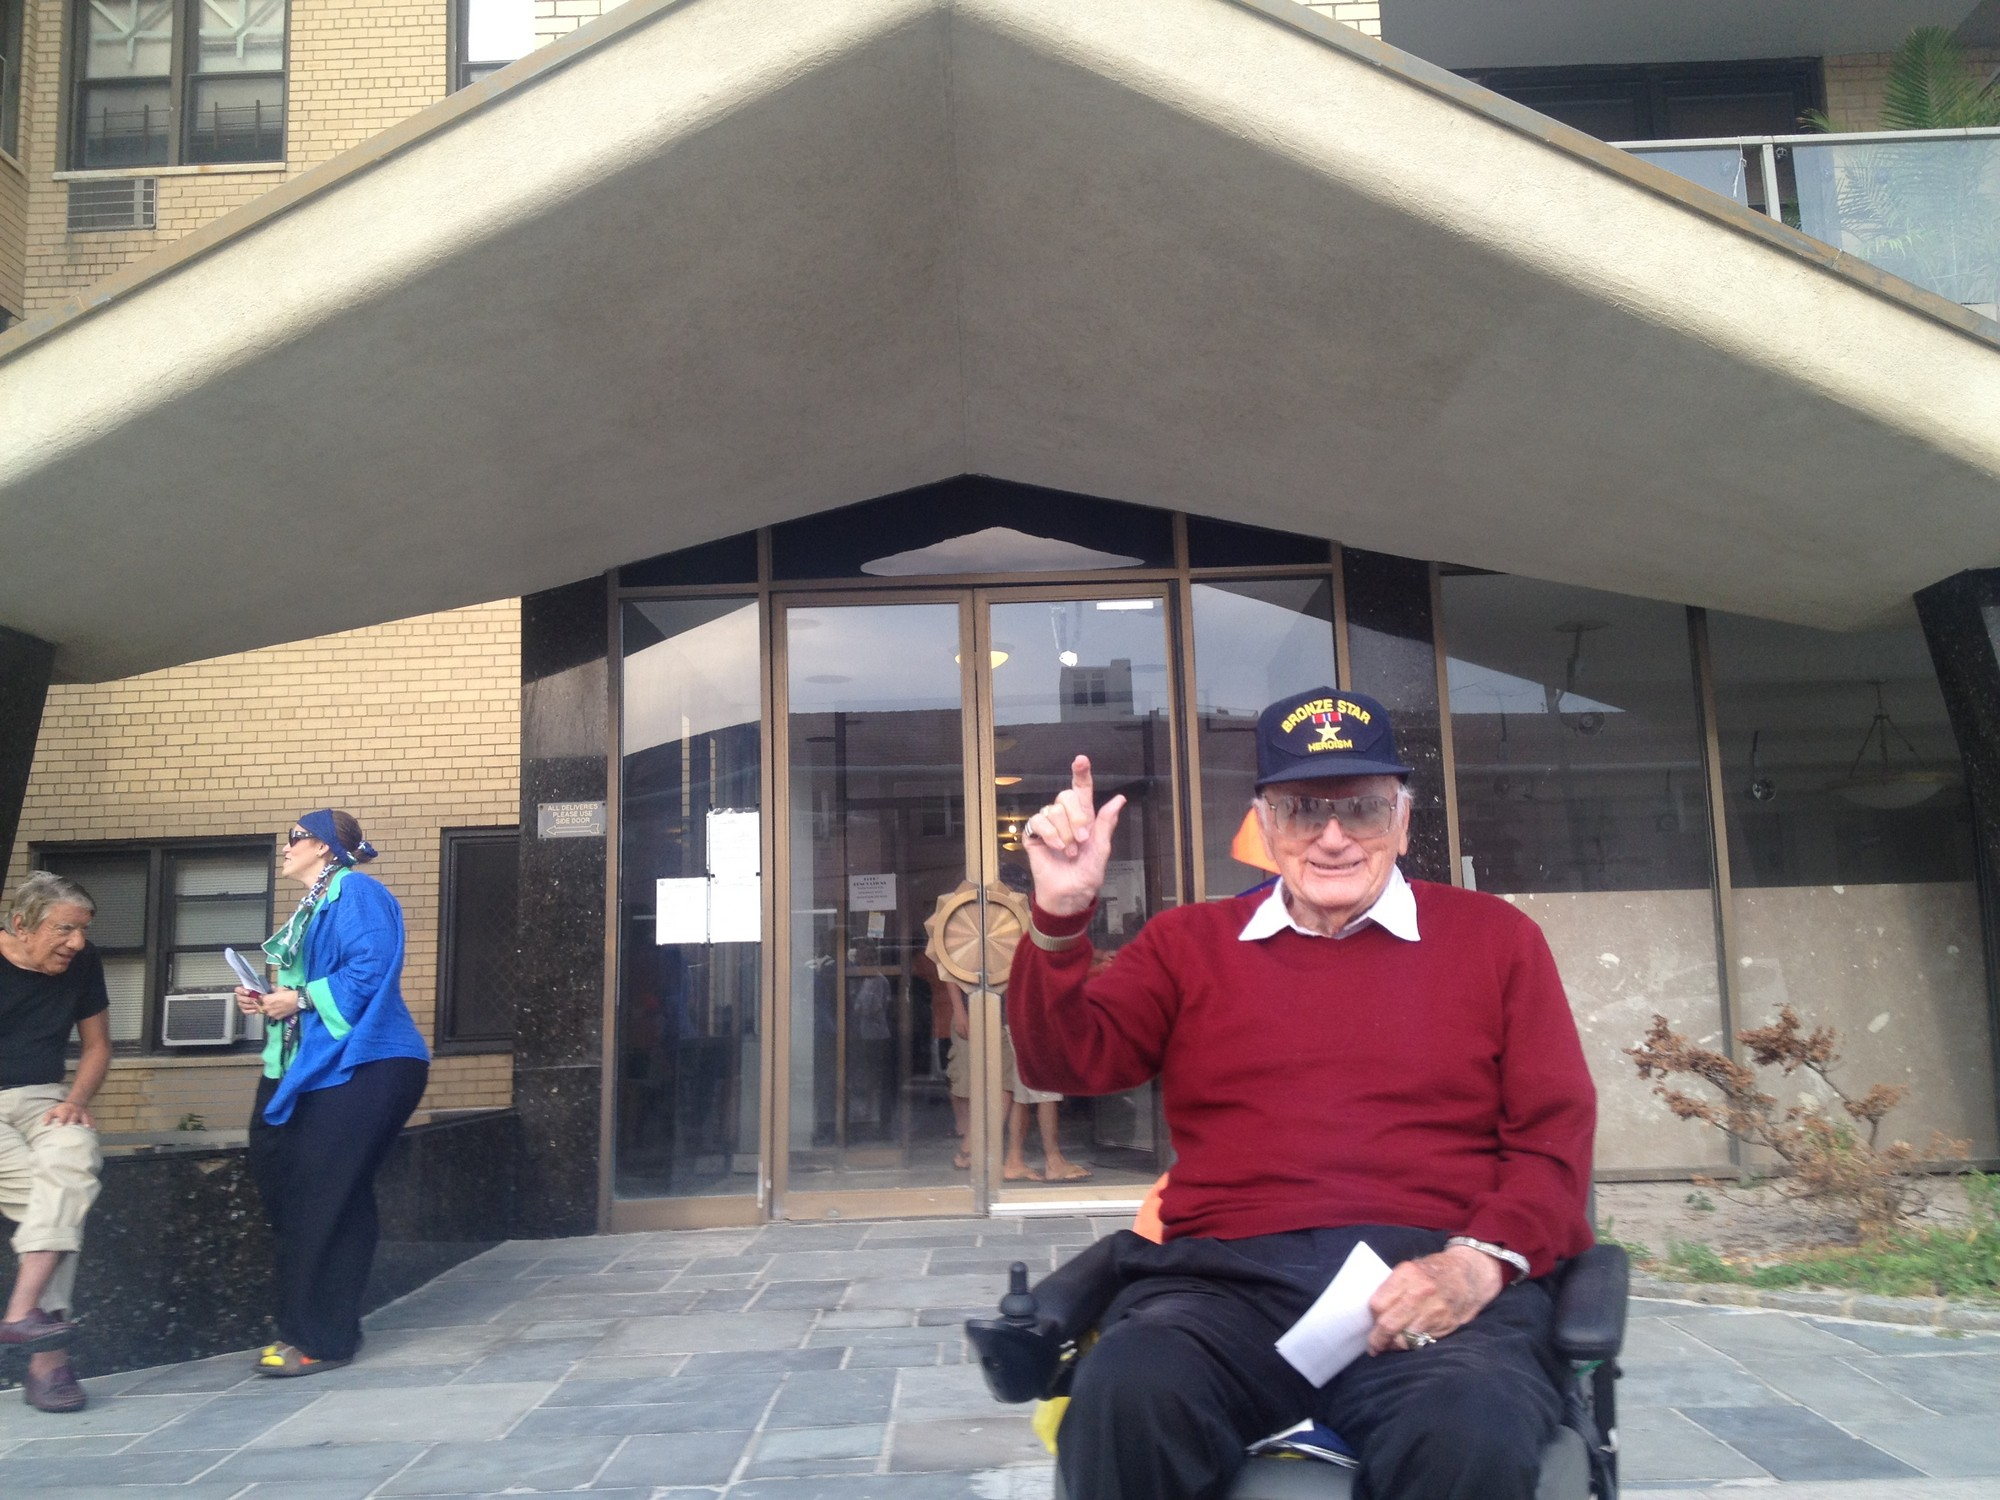 Resident Jimmy Norton, 91, said that the faulty elevators have affected his quality of life.